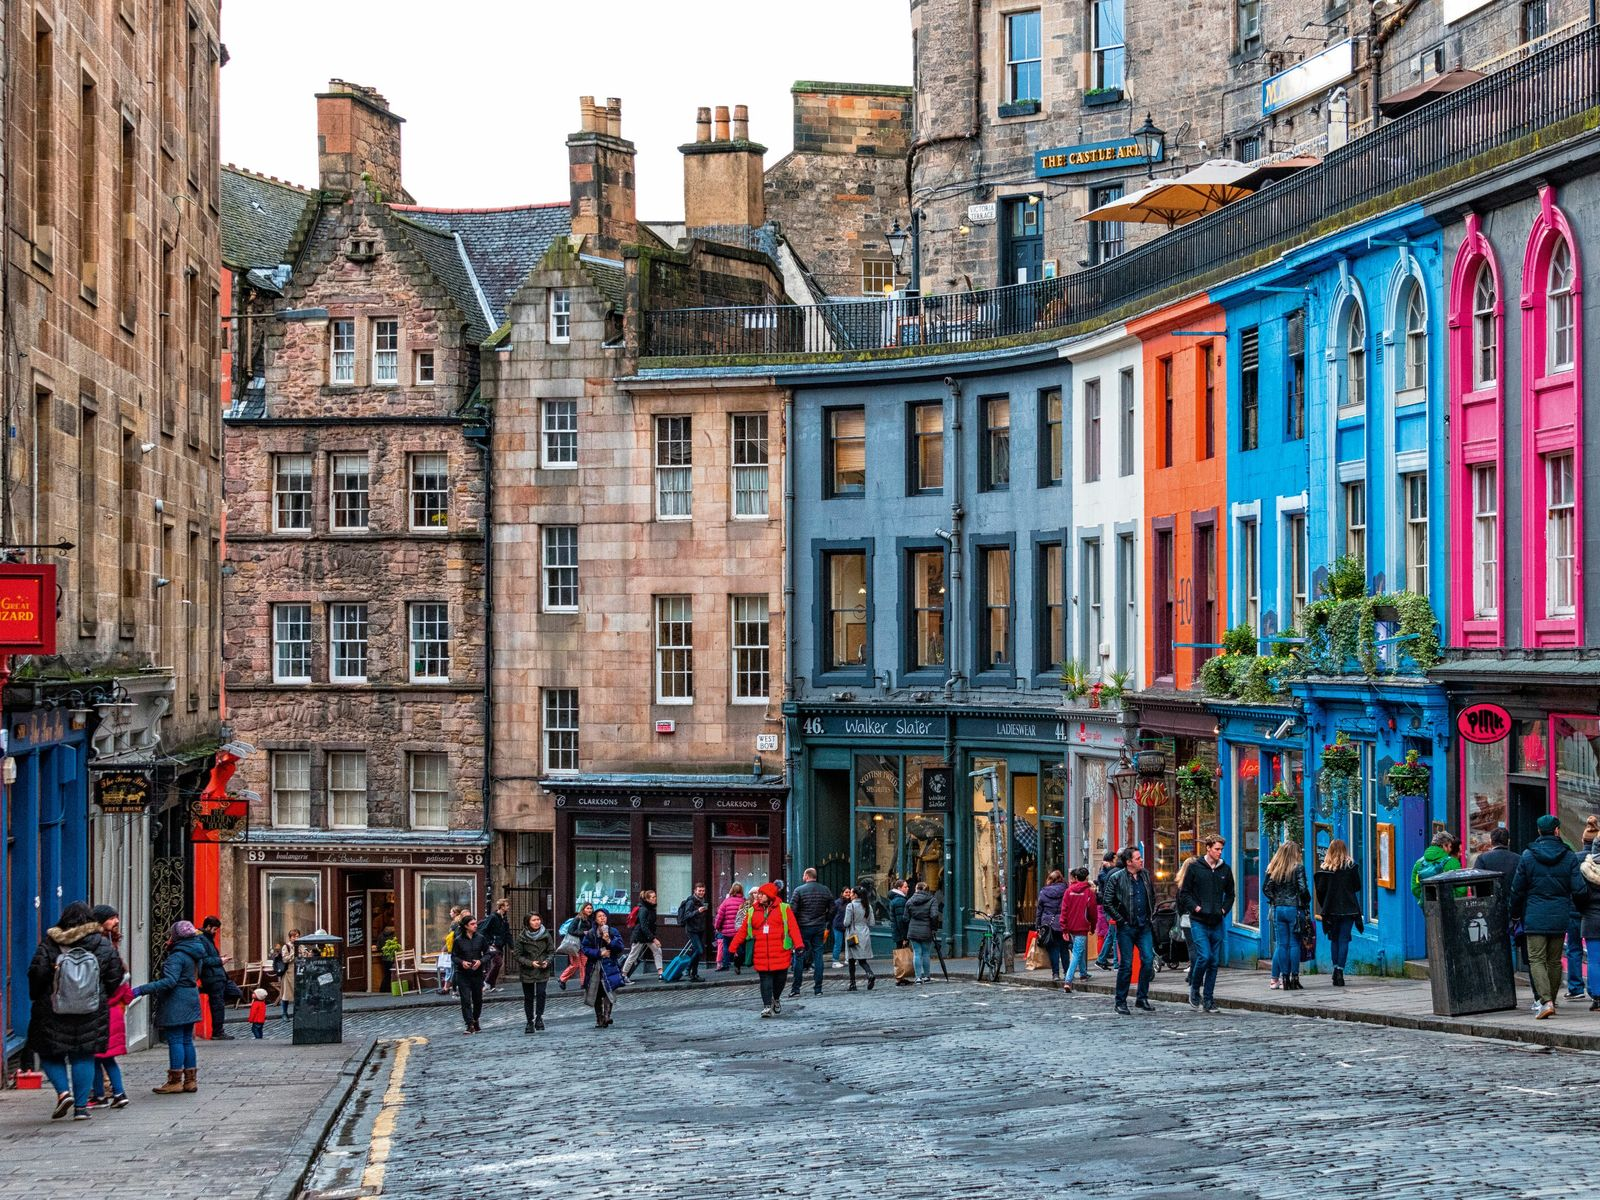 Colourful buildings along West Bow/Victoria Street, in the heart of Edinburgh's Old Town.